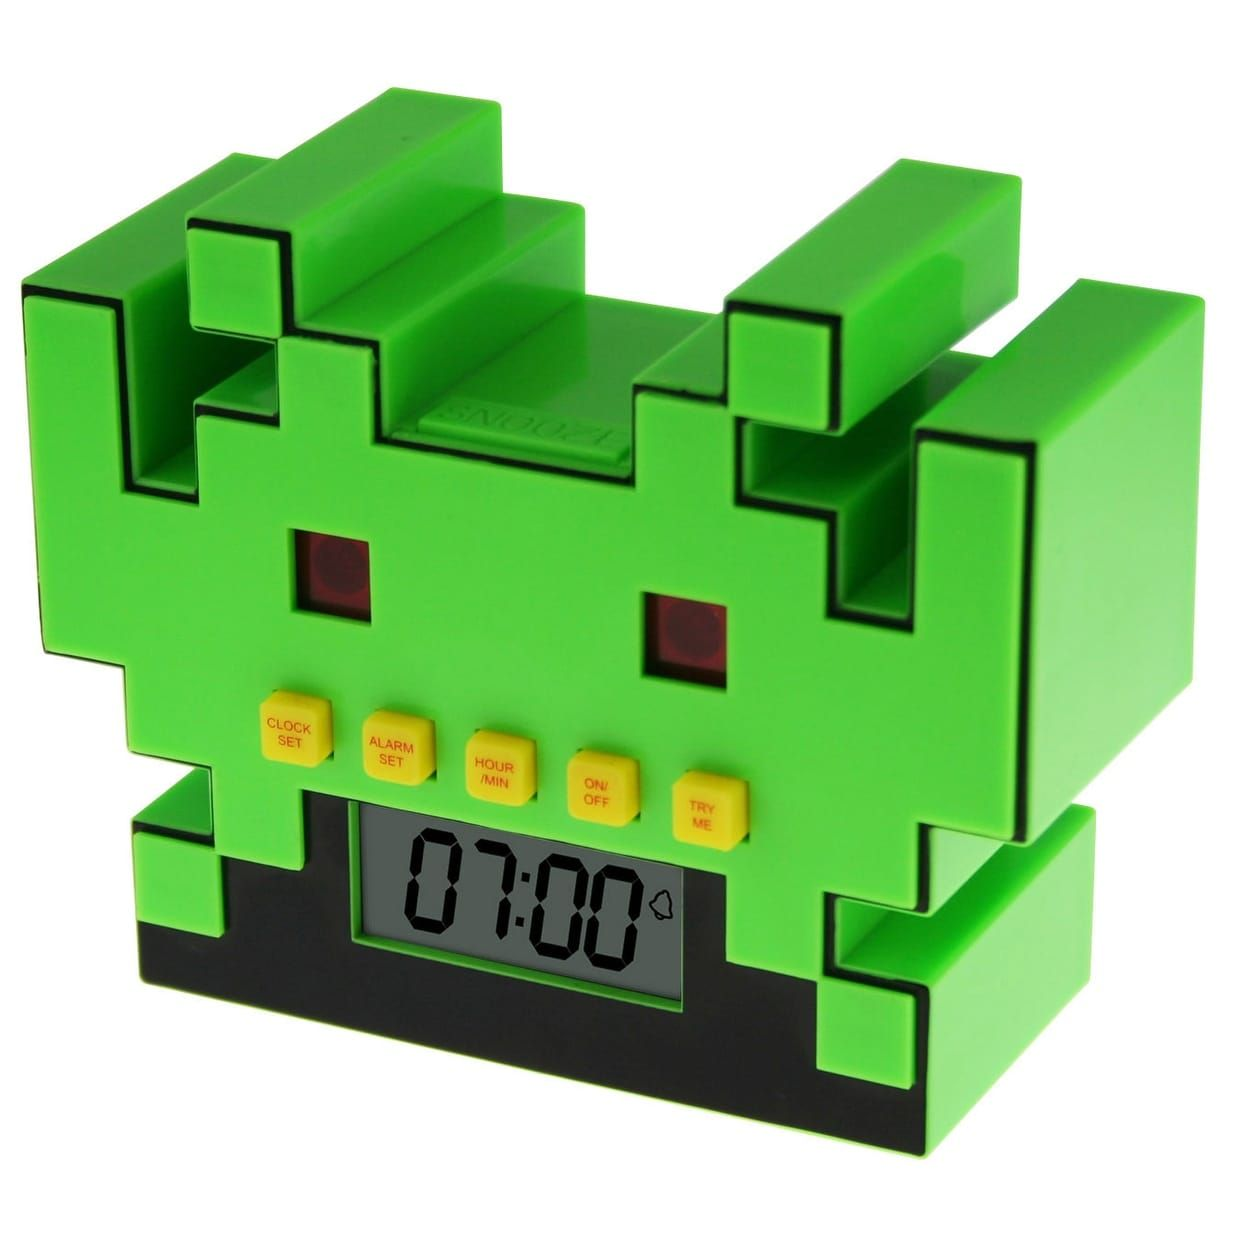 Space Invaders Digital Alarm Clock